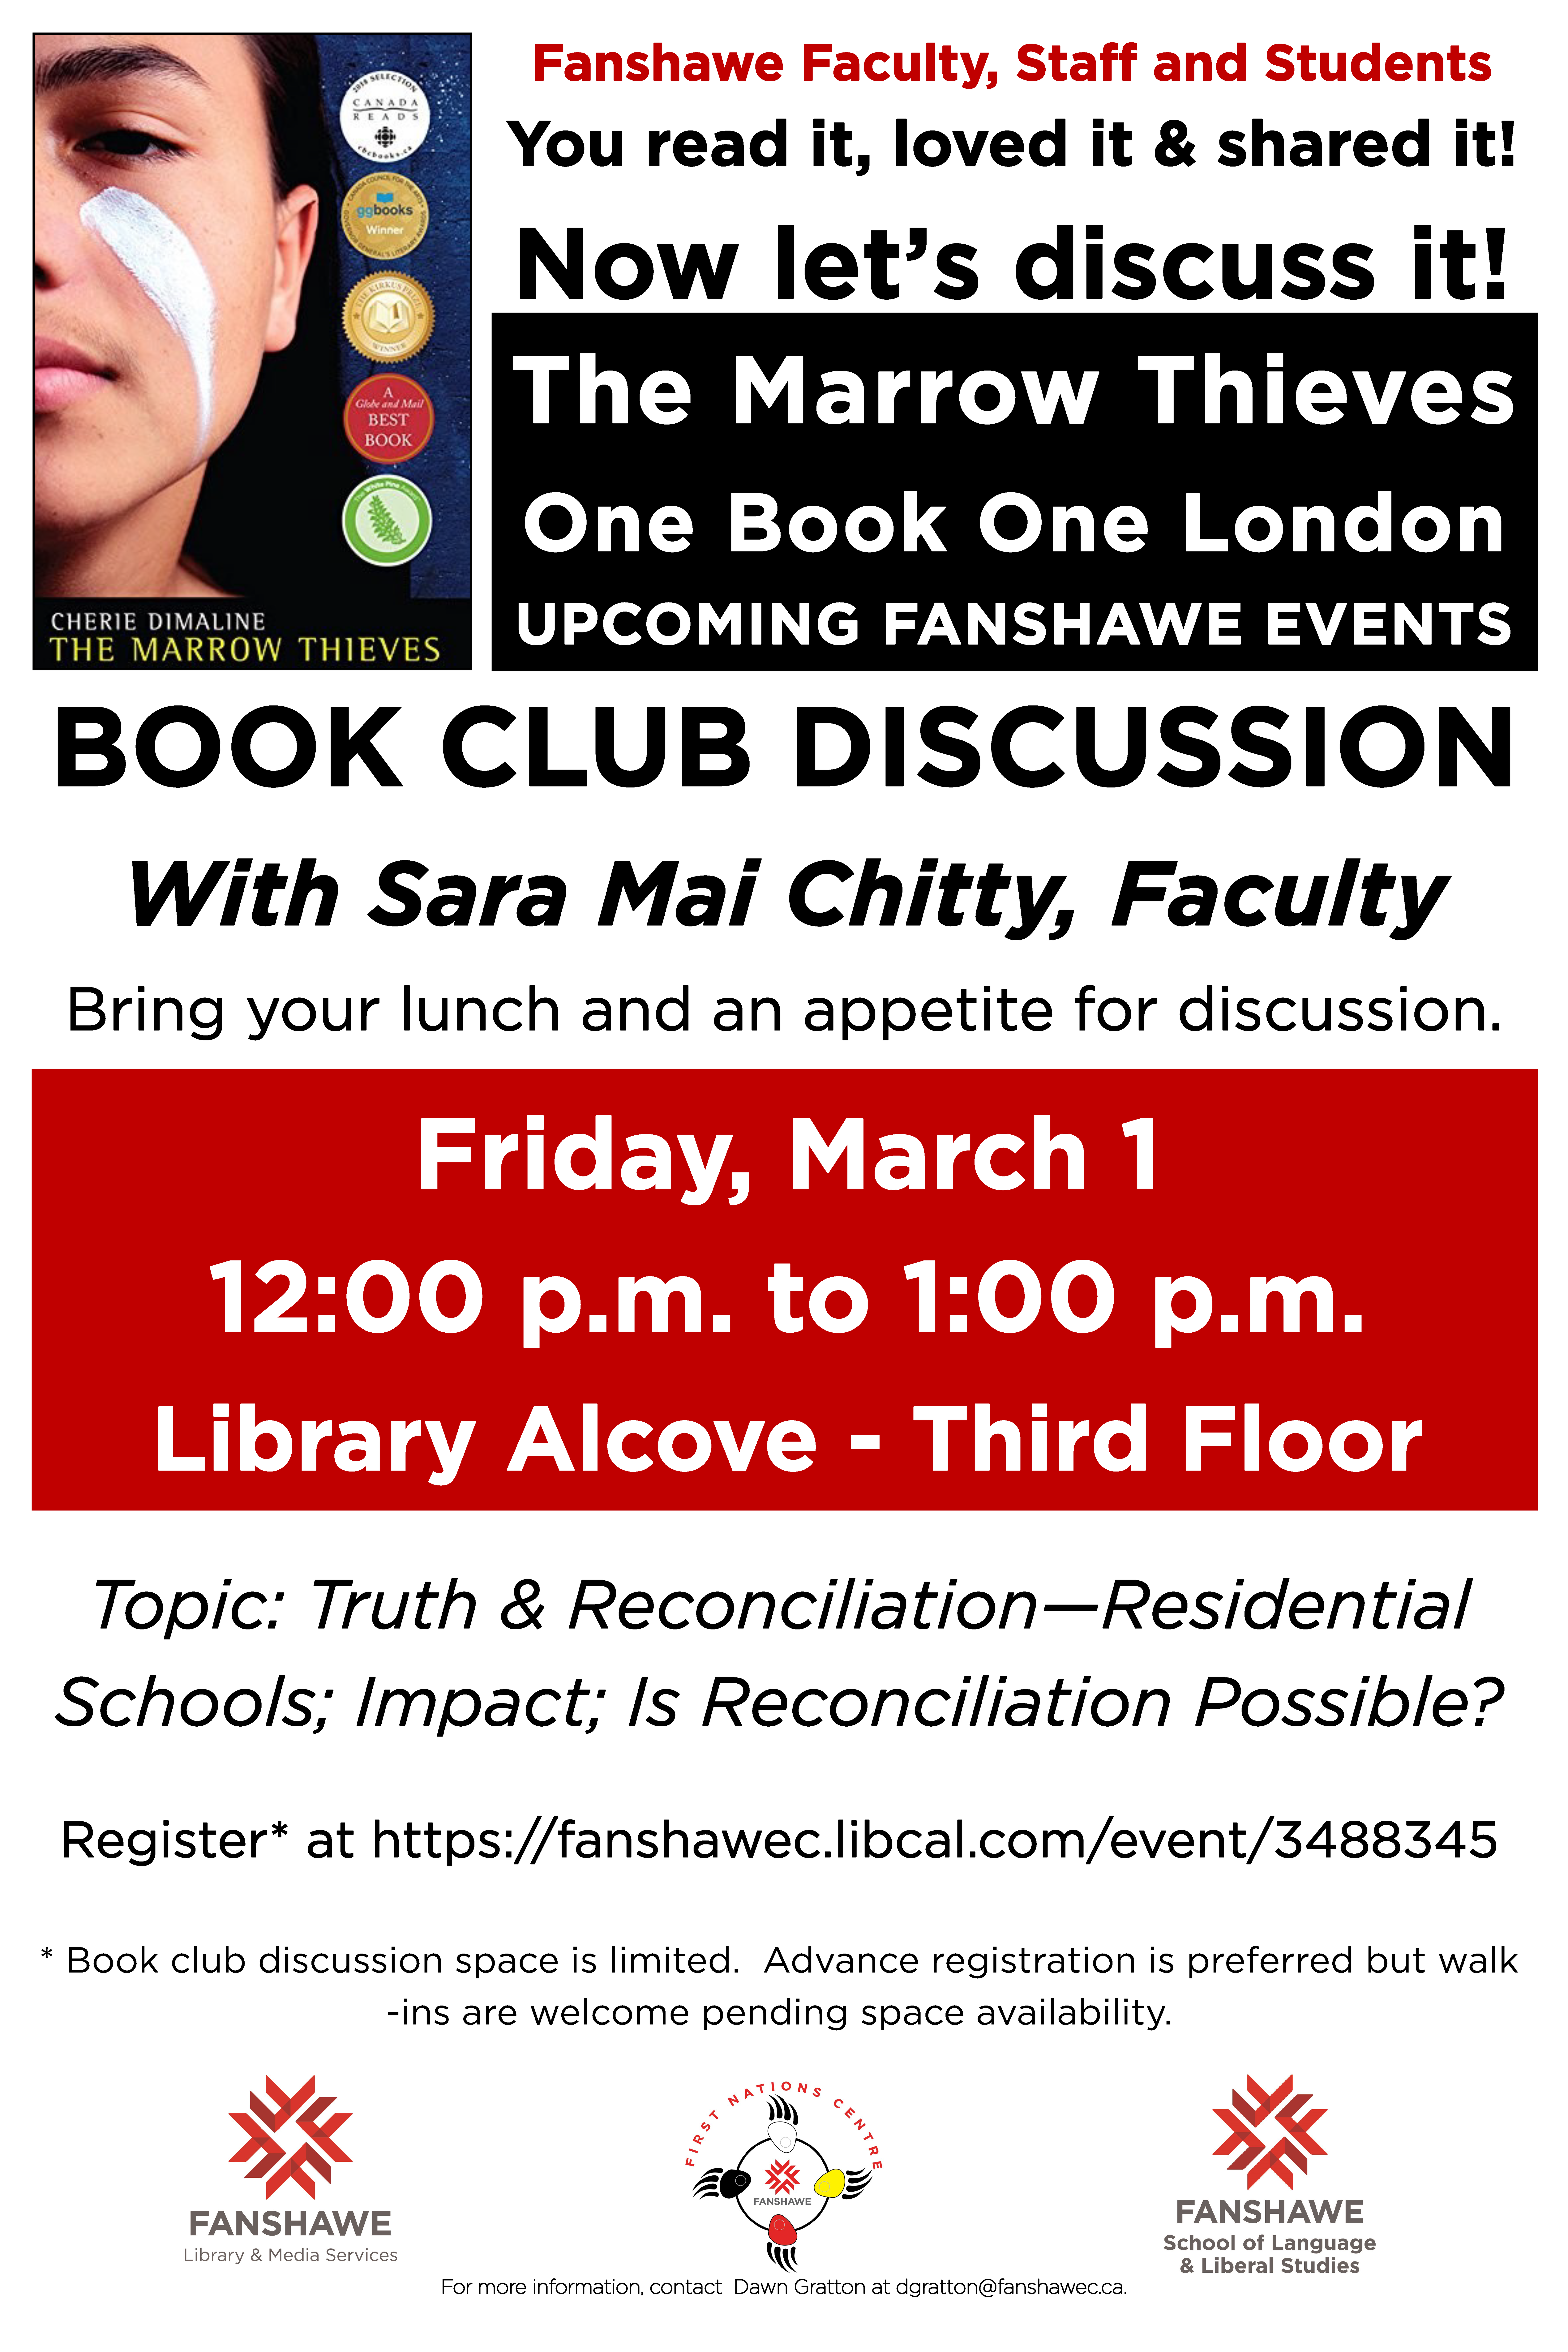 One Book One London Book Club Discussion: Truth and Reconciliation - Residential Schools, Impact, Is Reconciliation Possible?